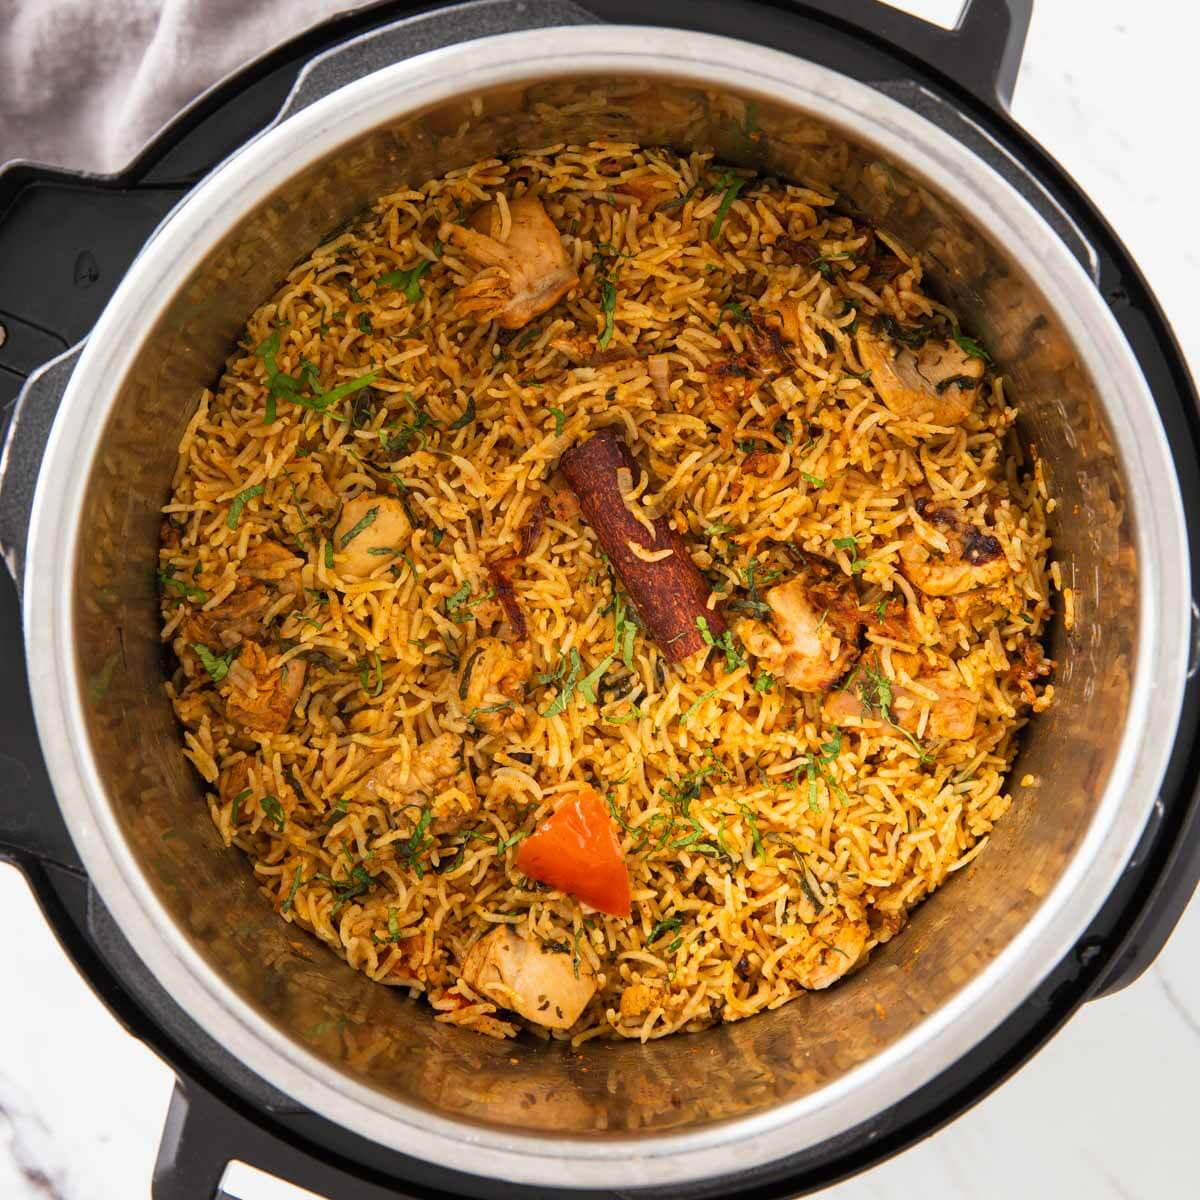 Authentic Indian chicken biryani prepared in an Instant Pot.